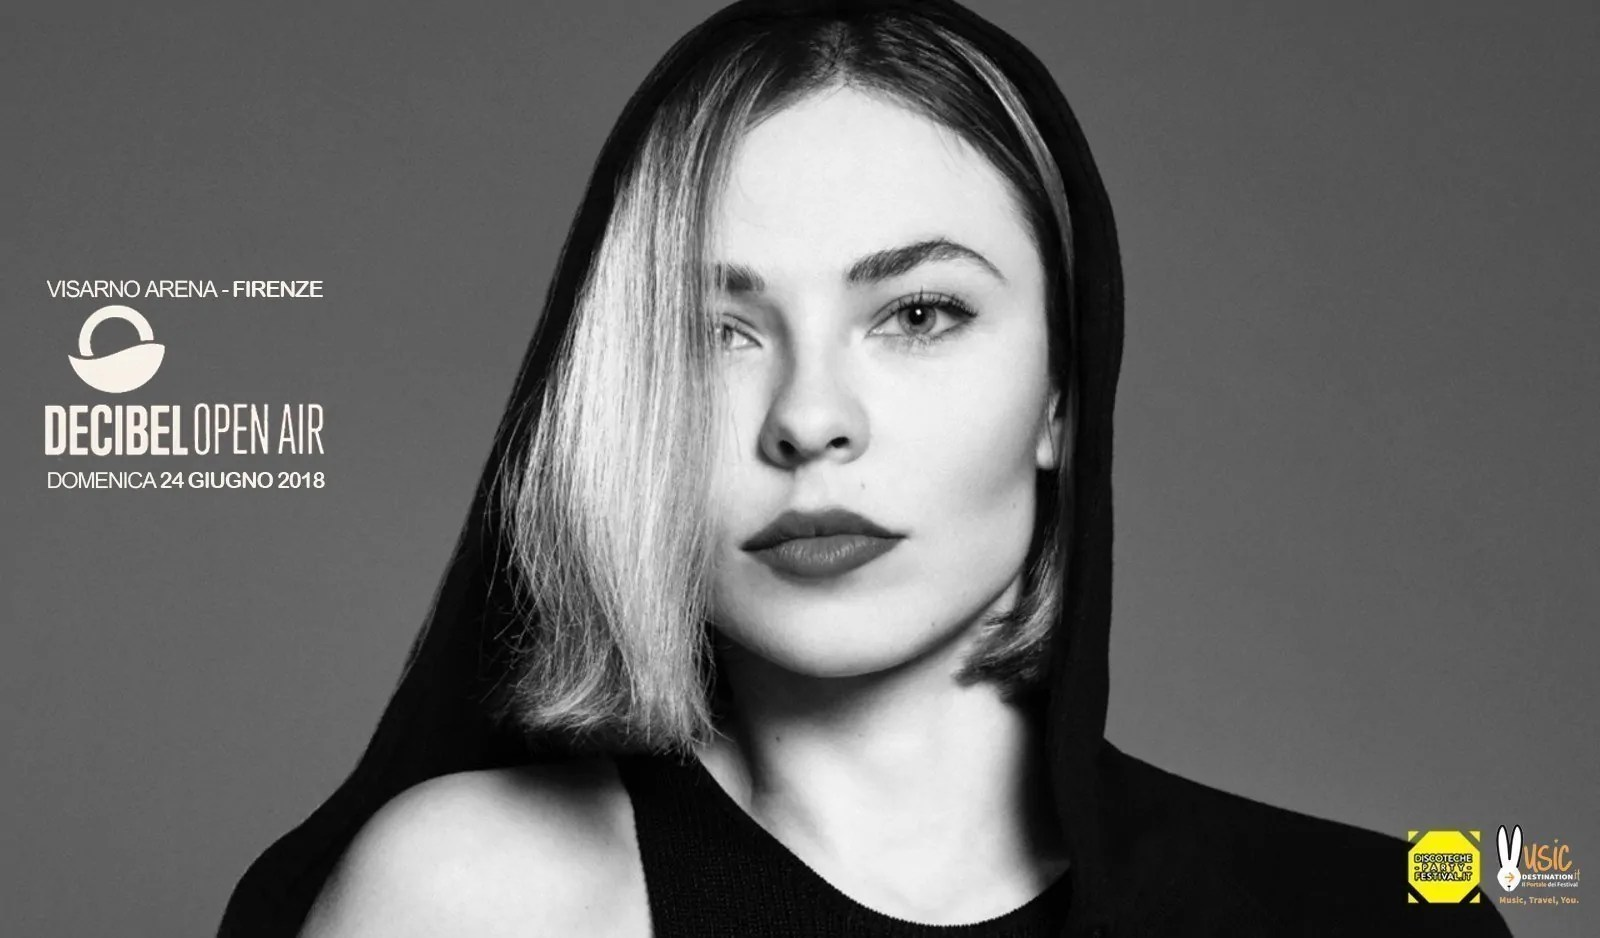 Nina-kraviz-decibel-open-air-firenze